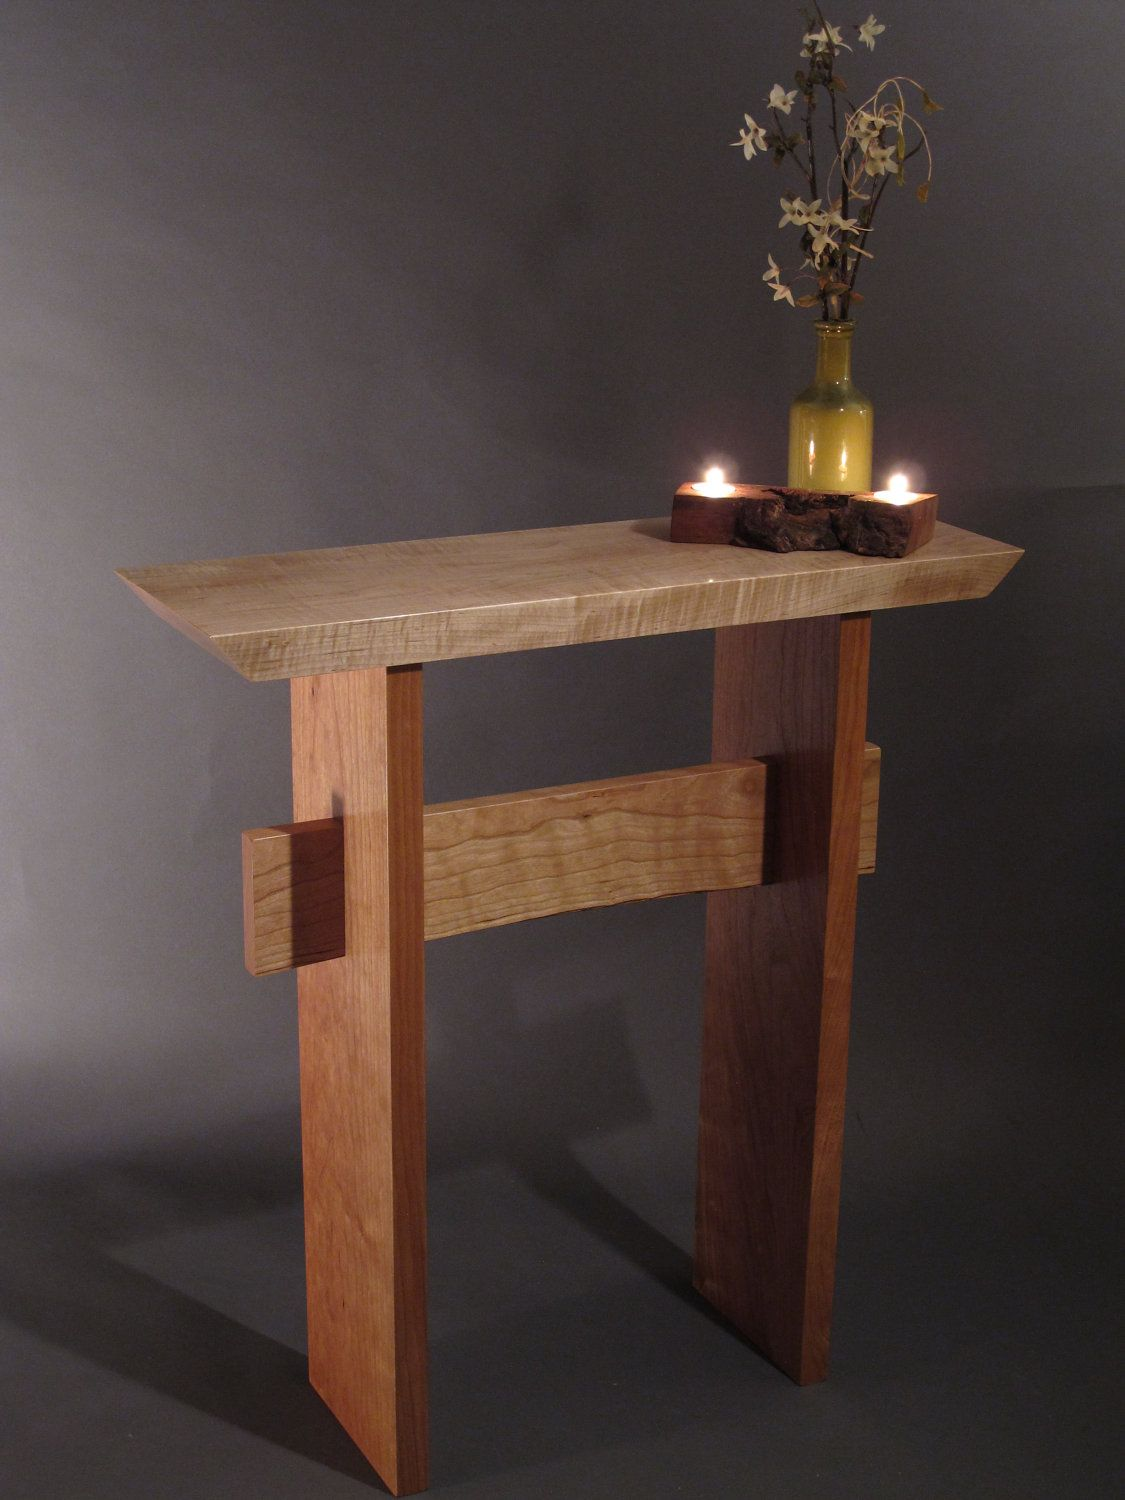 Small Console Table for Front Door: Mid Century Modern Zen ...